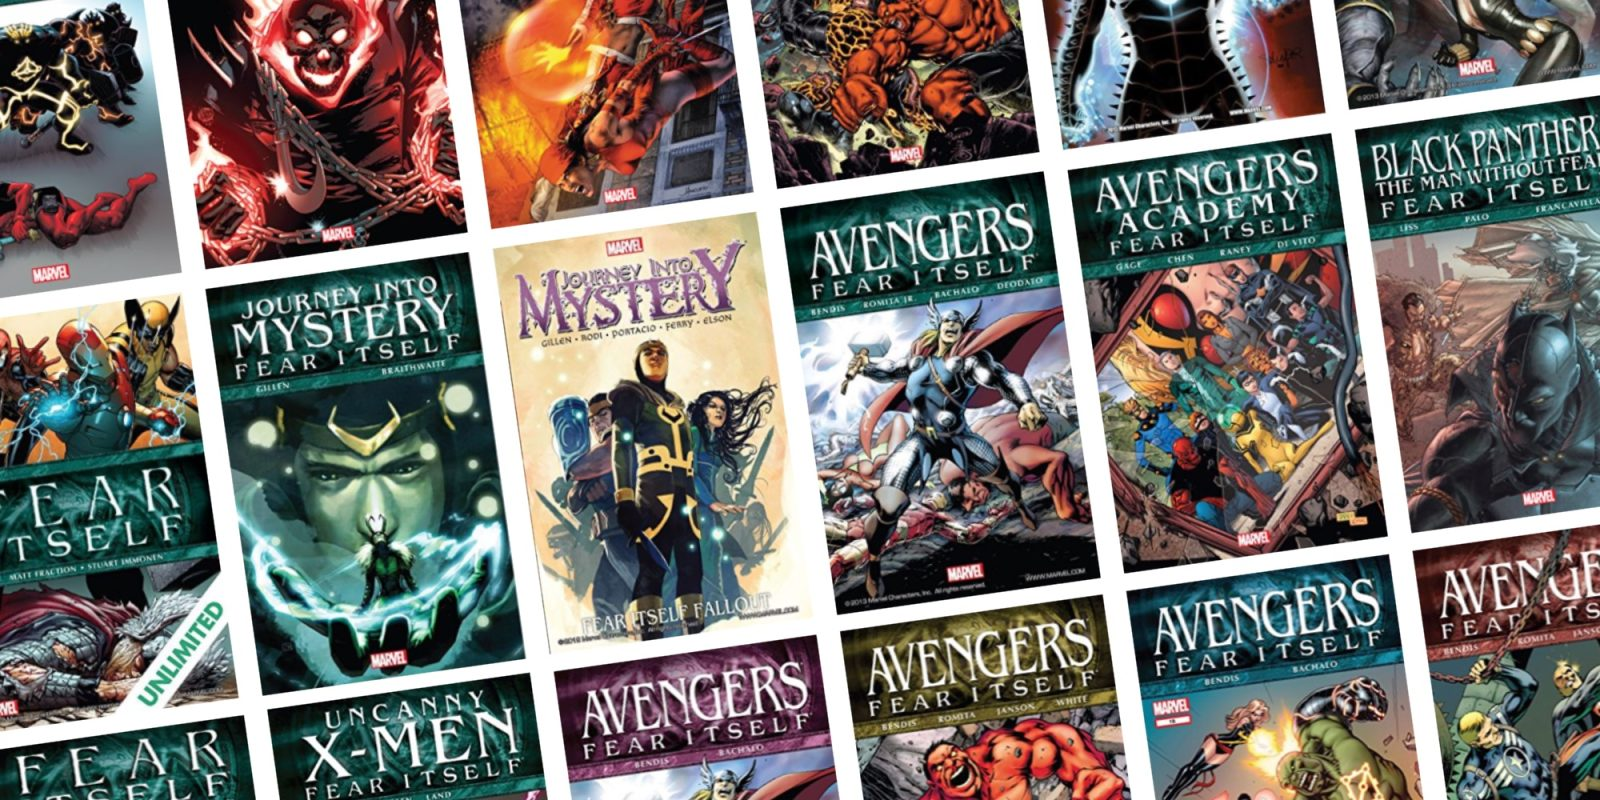 ComiXology's Fear Itself sale expands your Marvel reading list from $1, more